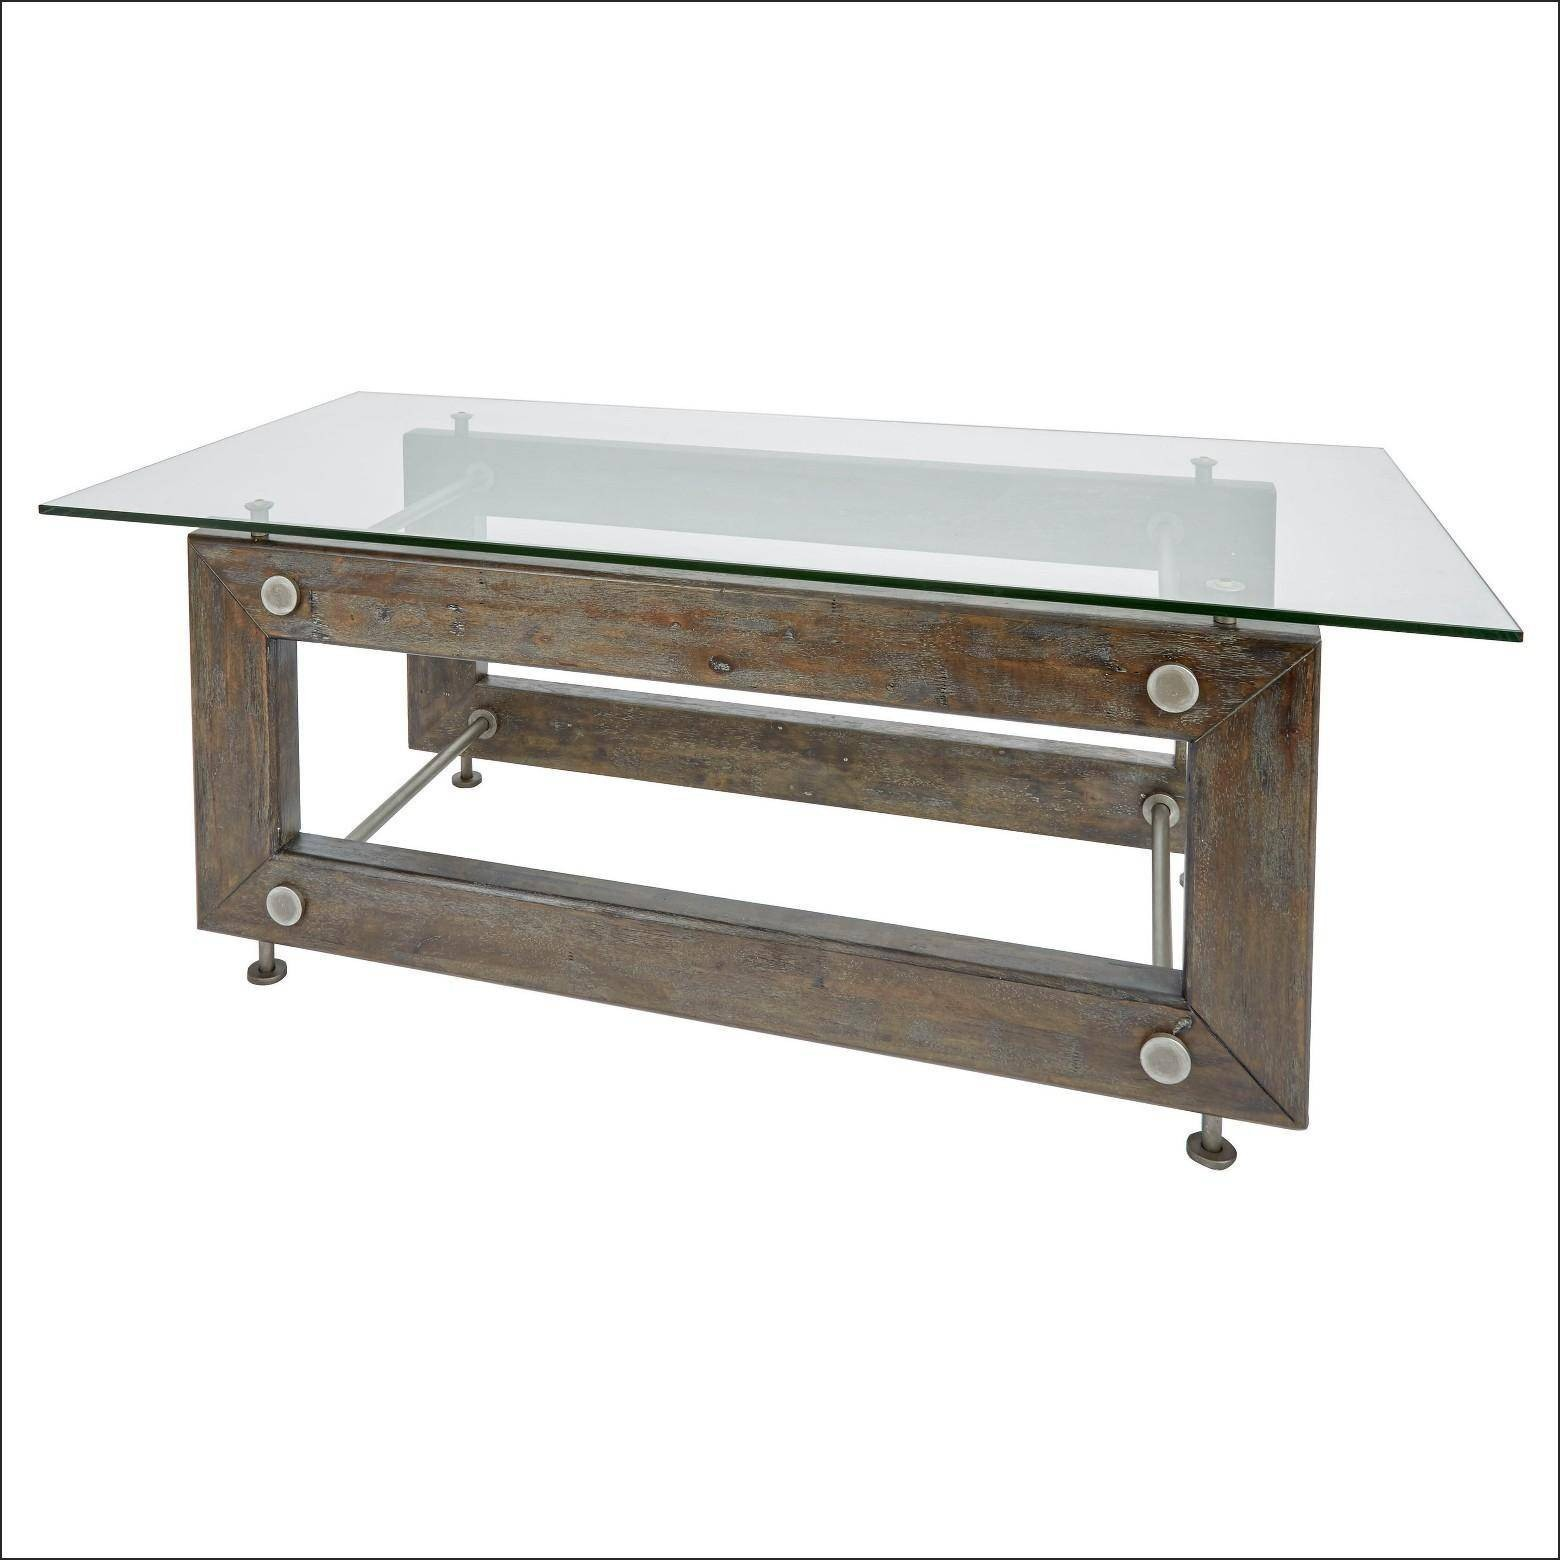 glass end tables for bedroom garage coffee table samples also side accent fresh lamps new cool green awesome small design ideas luxury living room full size tempo furniture narrow